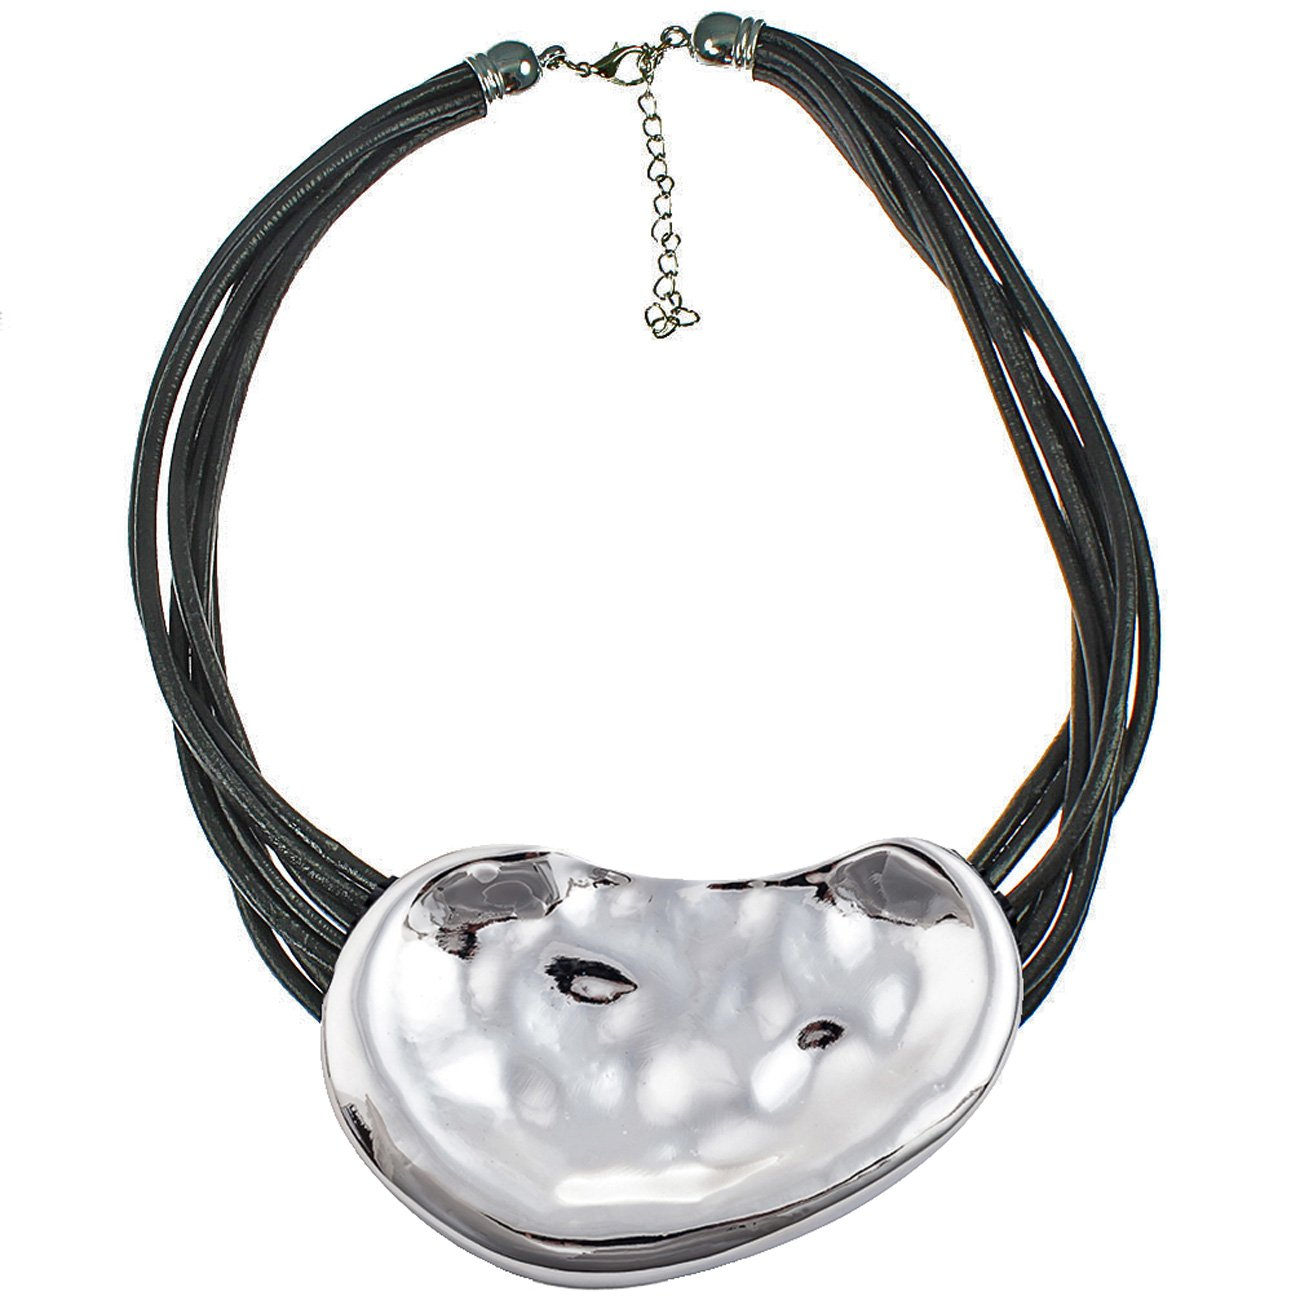 Huge chunky silver hammered statement jewellery pendant cord choker necklace